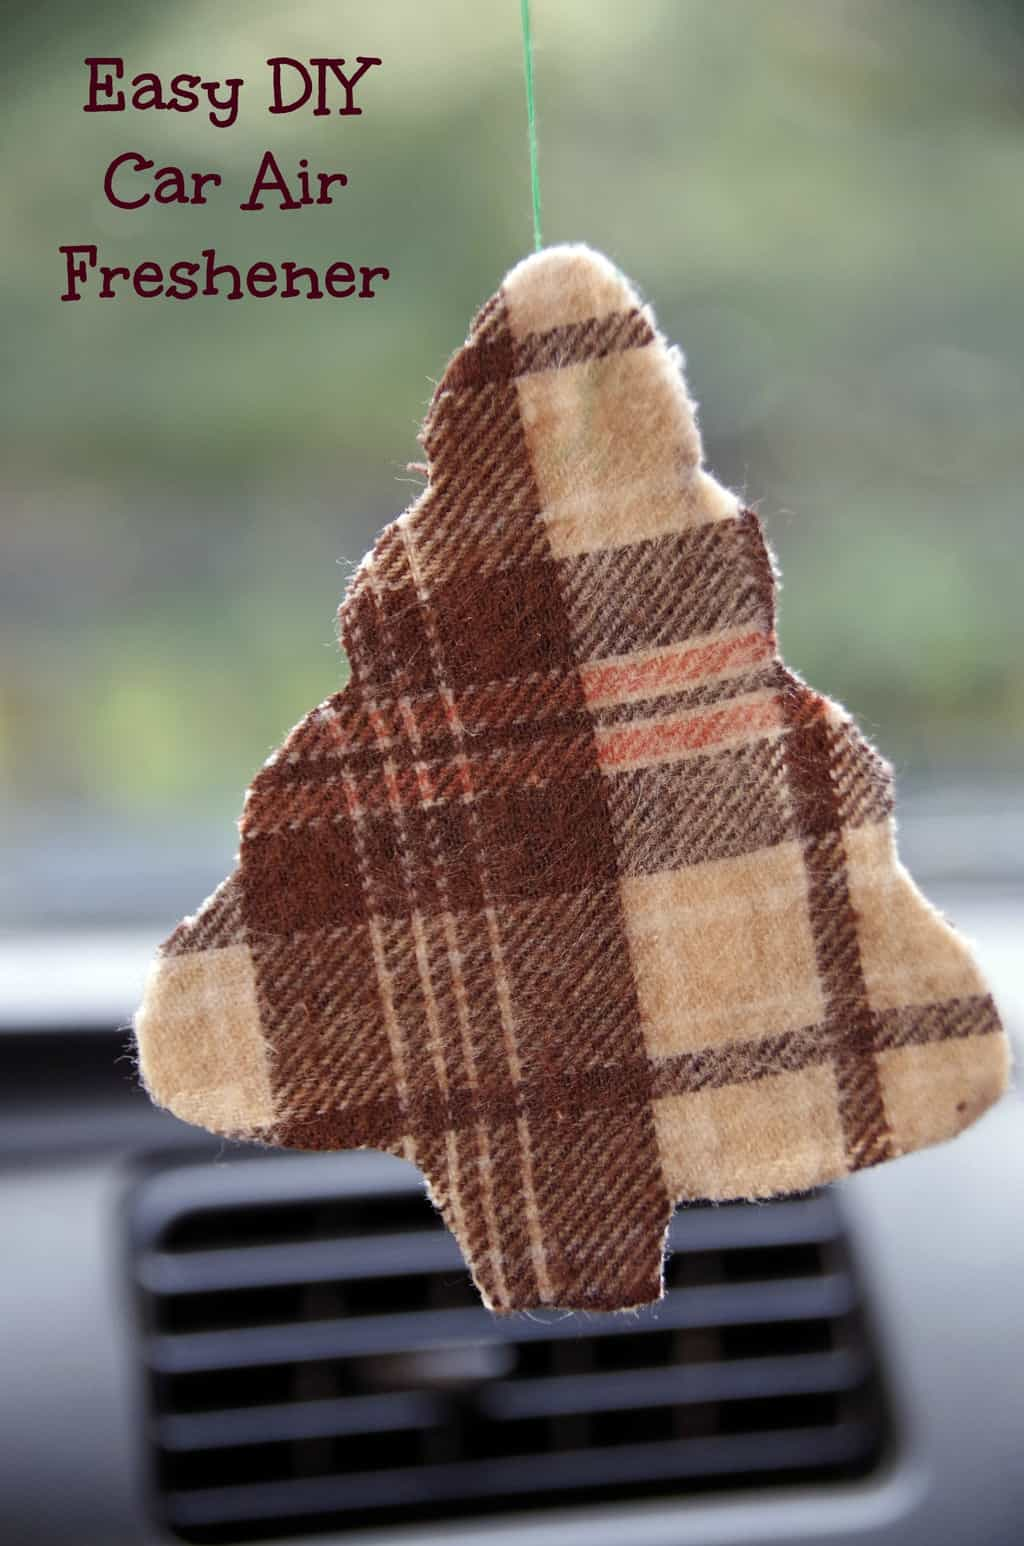 How to Make a Car Air Freshener - Suburbia Unwrapped